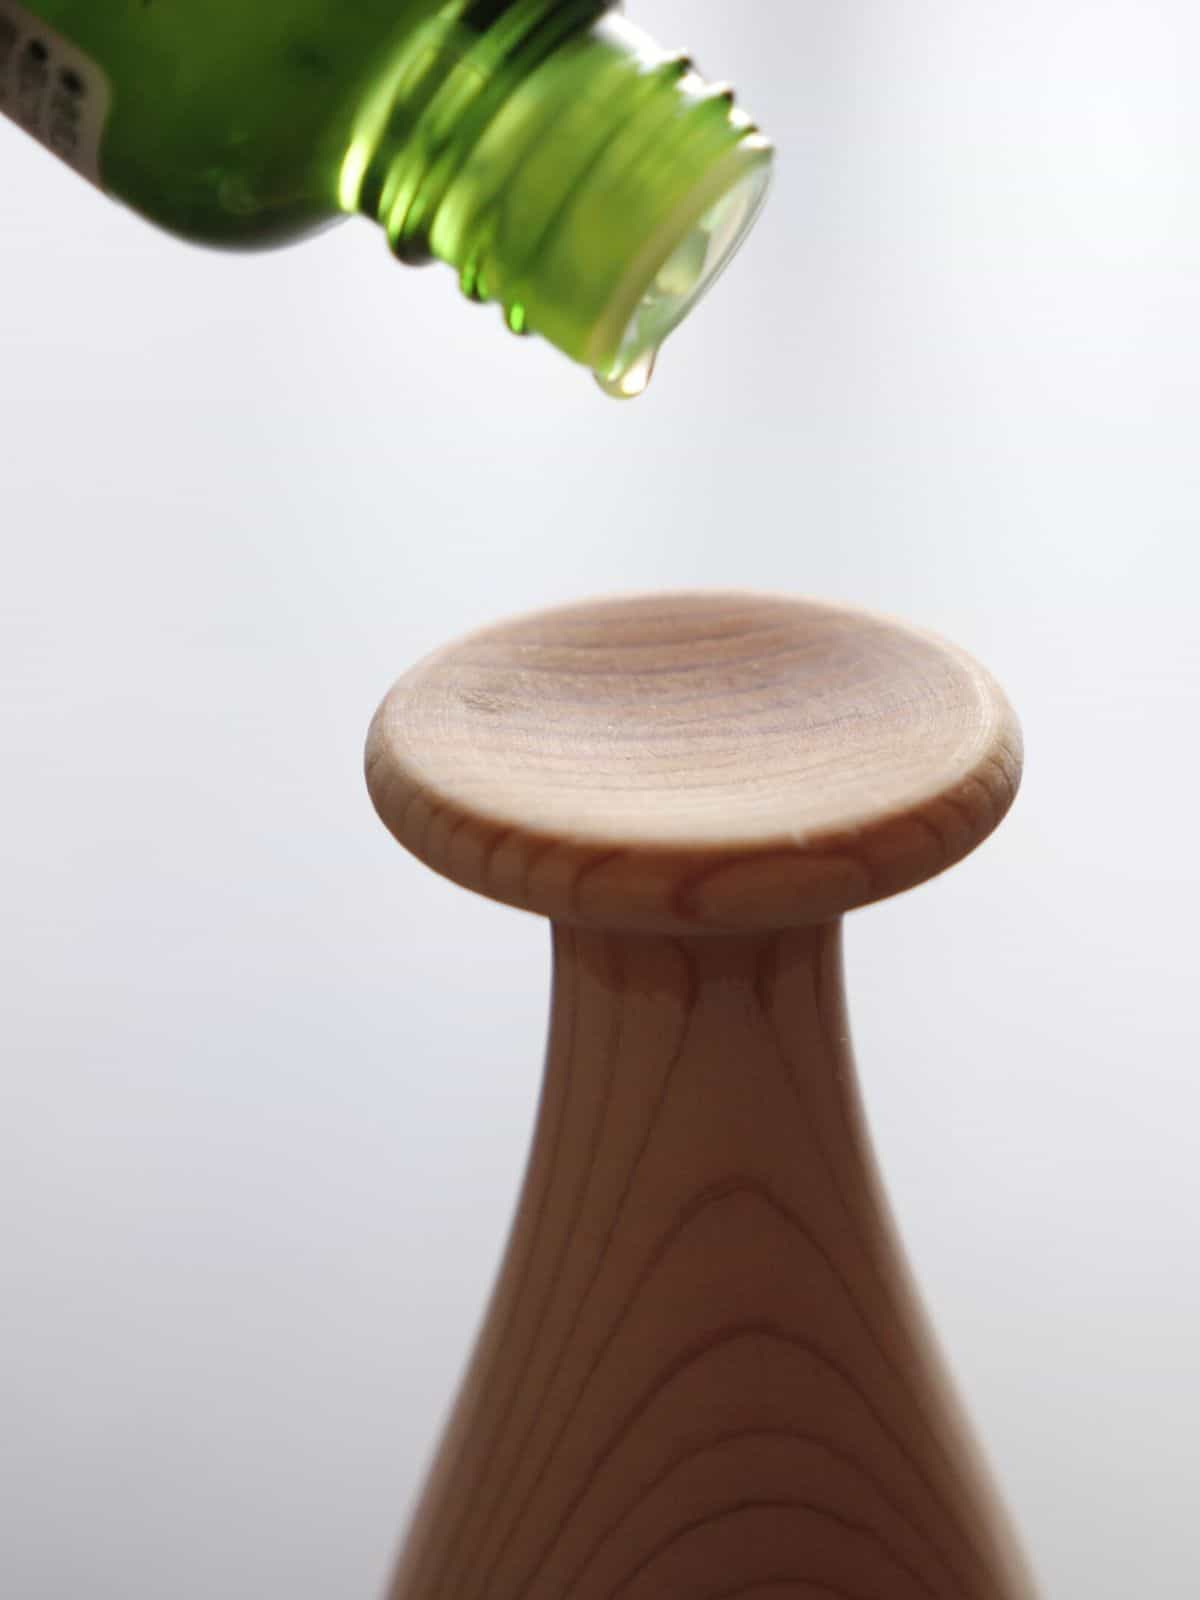 Wooden diffuser on table with essential oil dripping onto it.